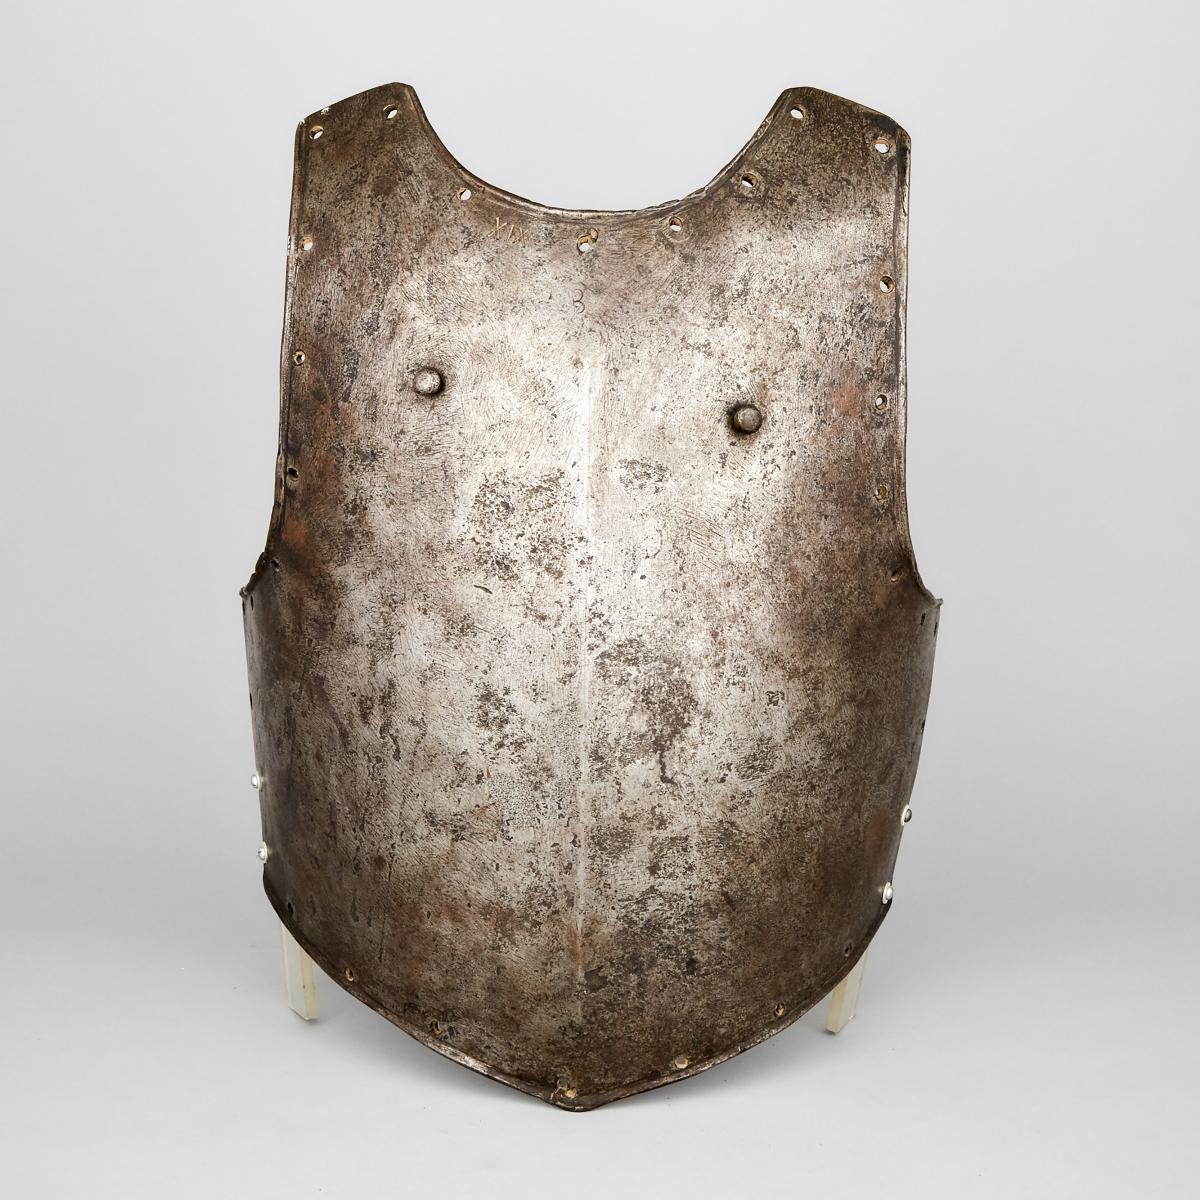 North European Breastplate, early/mid 17th century, height 19 in — 48.3 cm